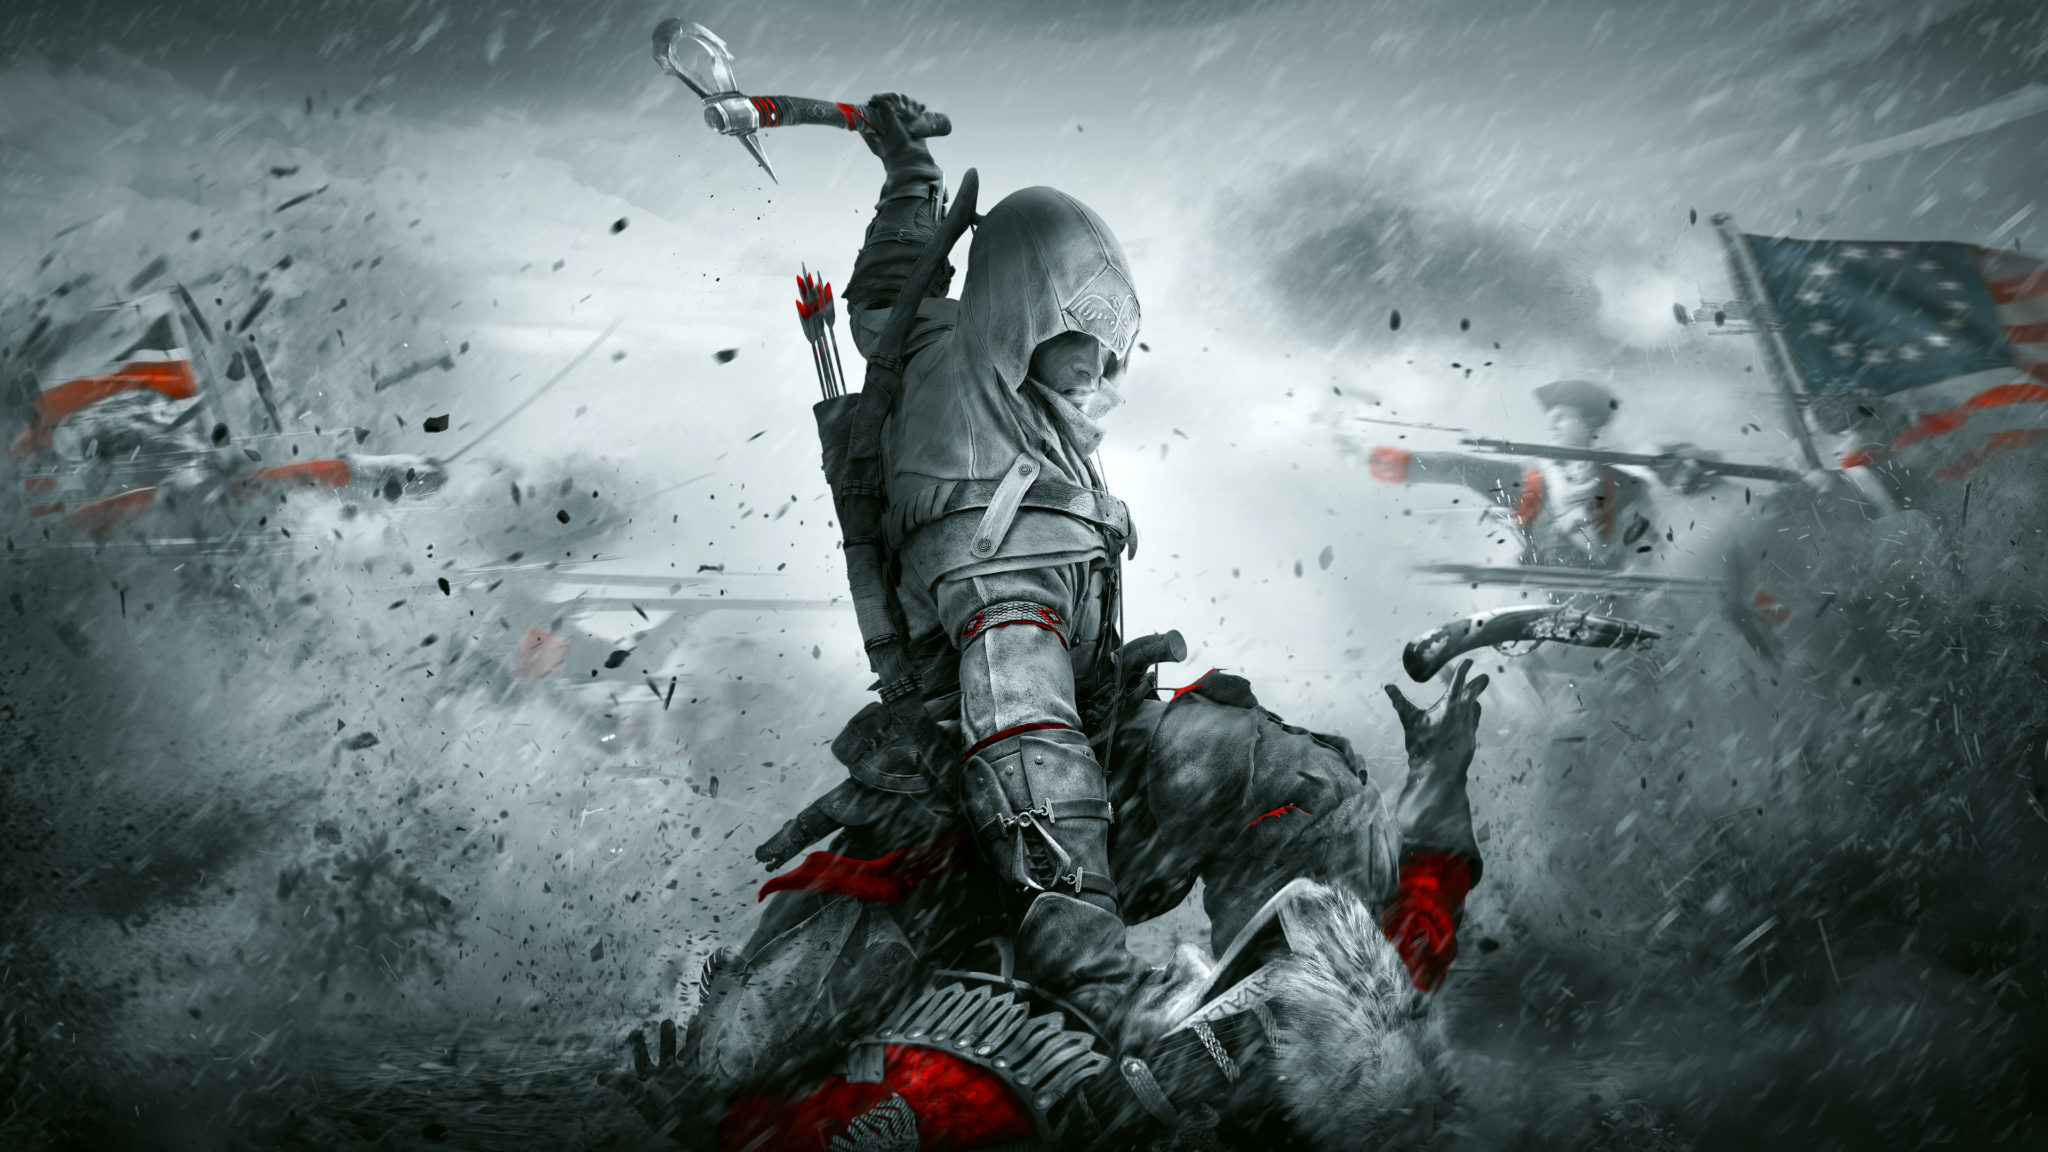 Assassin's Creed III Remastered Release Date, Scheduled on March 29th, Ubisoft Announced